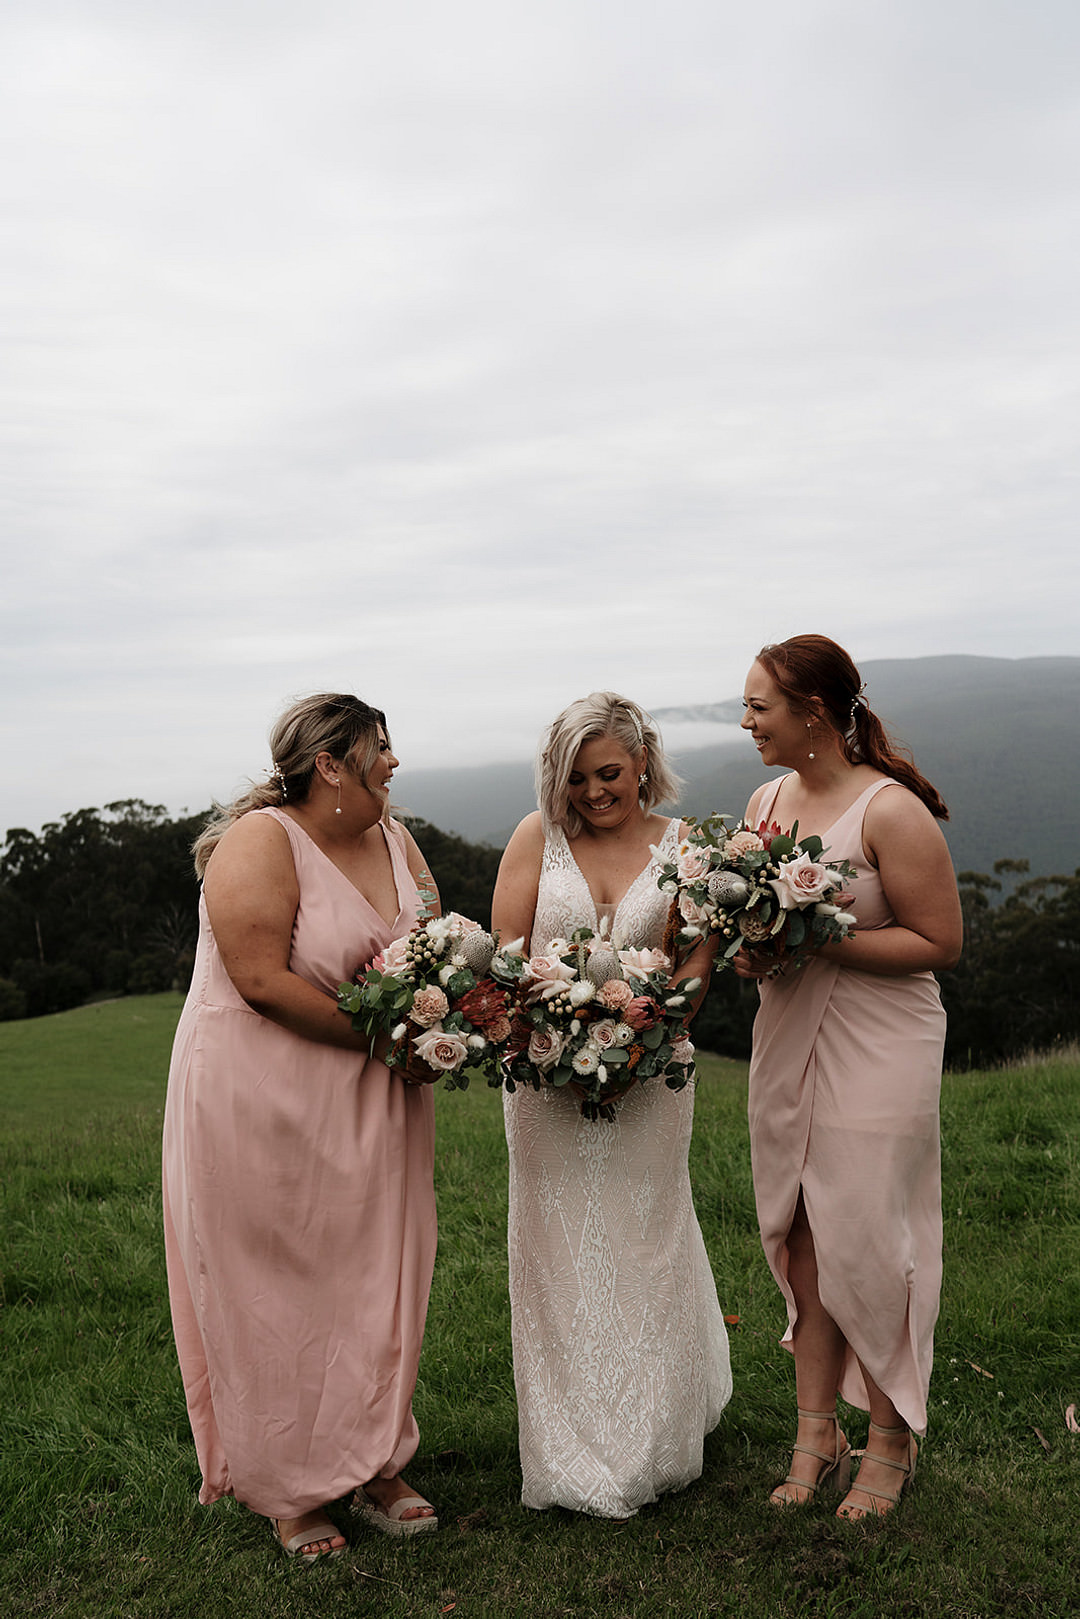 Bridesmaids Bridesmaid Dress Dresses Pink Mountain Elopement Petite Visuals